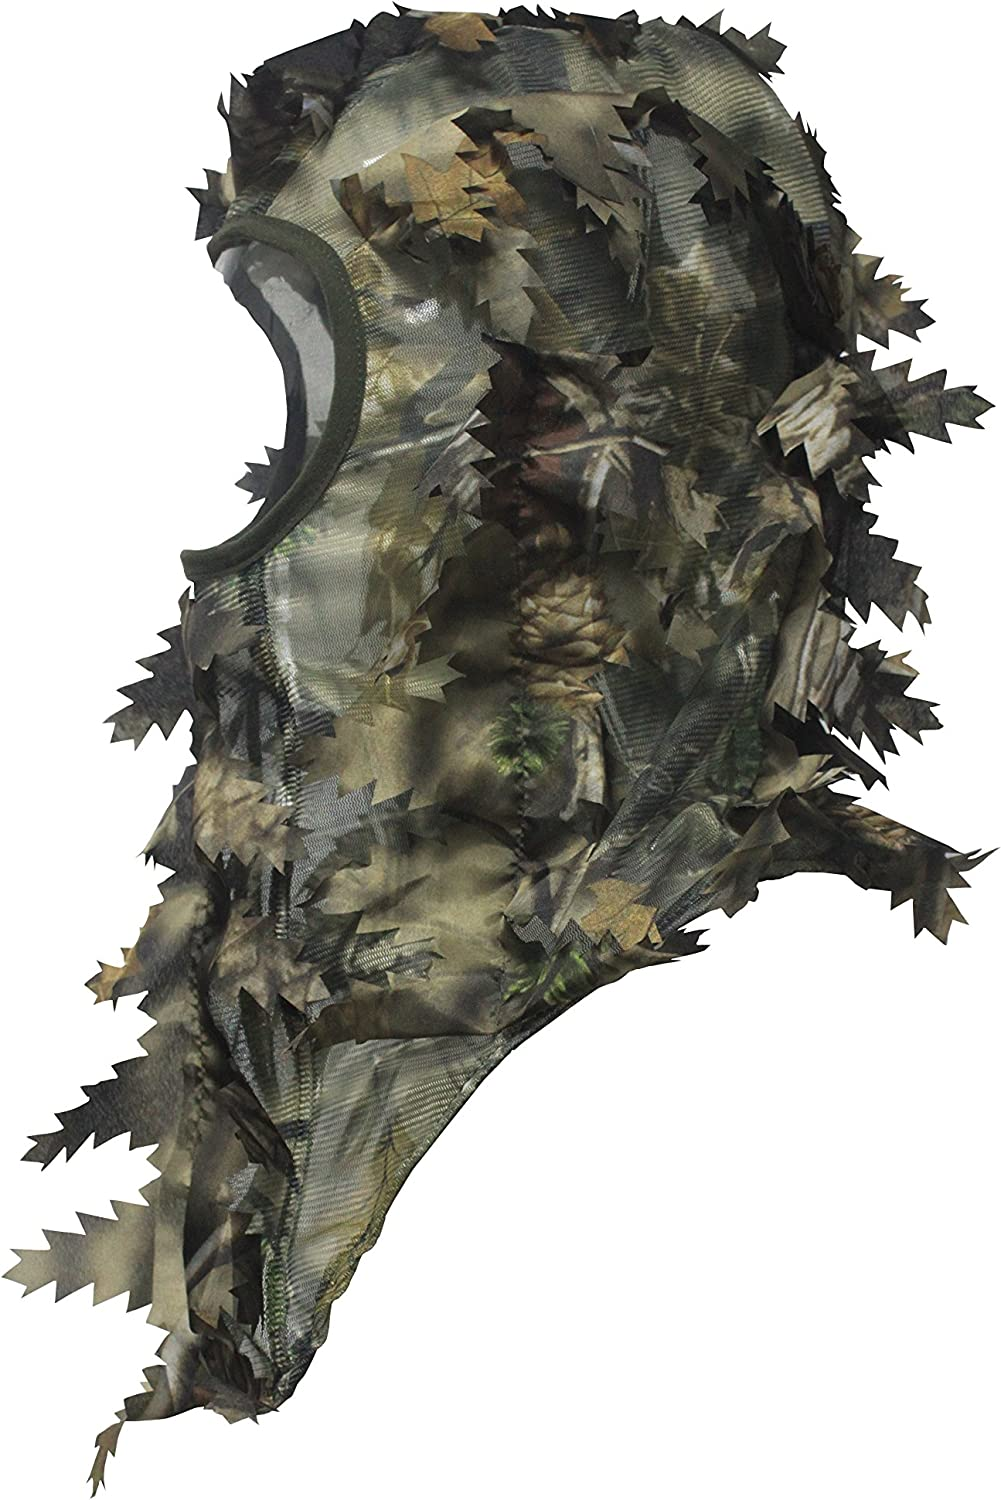 North Mountain Gear Ambush HD Camouflage Hunting Full Cover Leafy 3D Face Mask (Brown) : Clothing